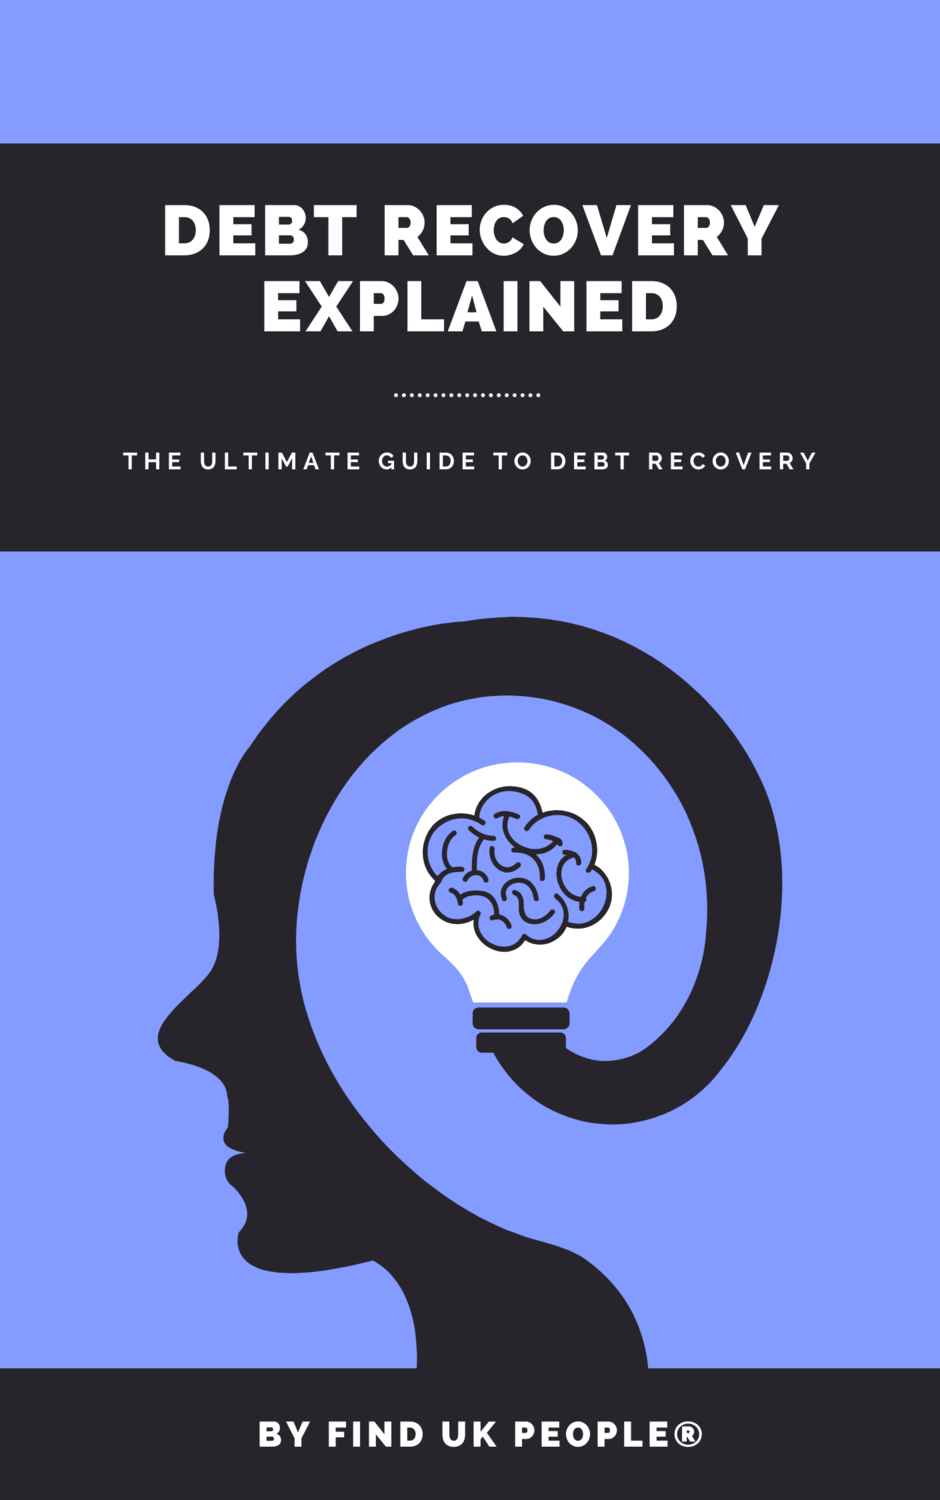 Debt recovery guide